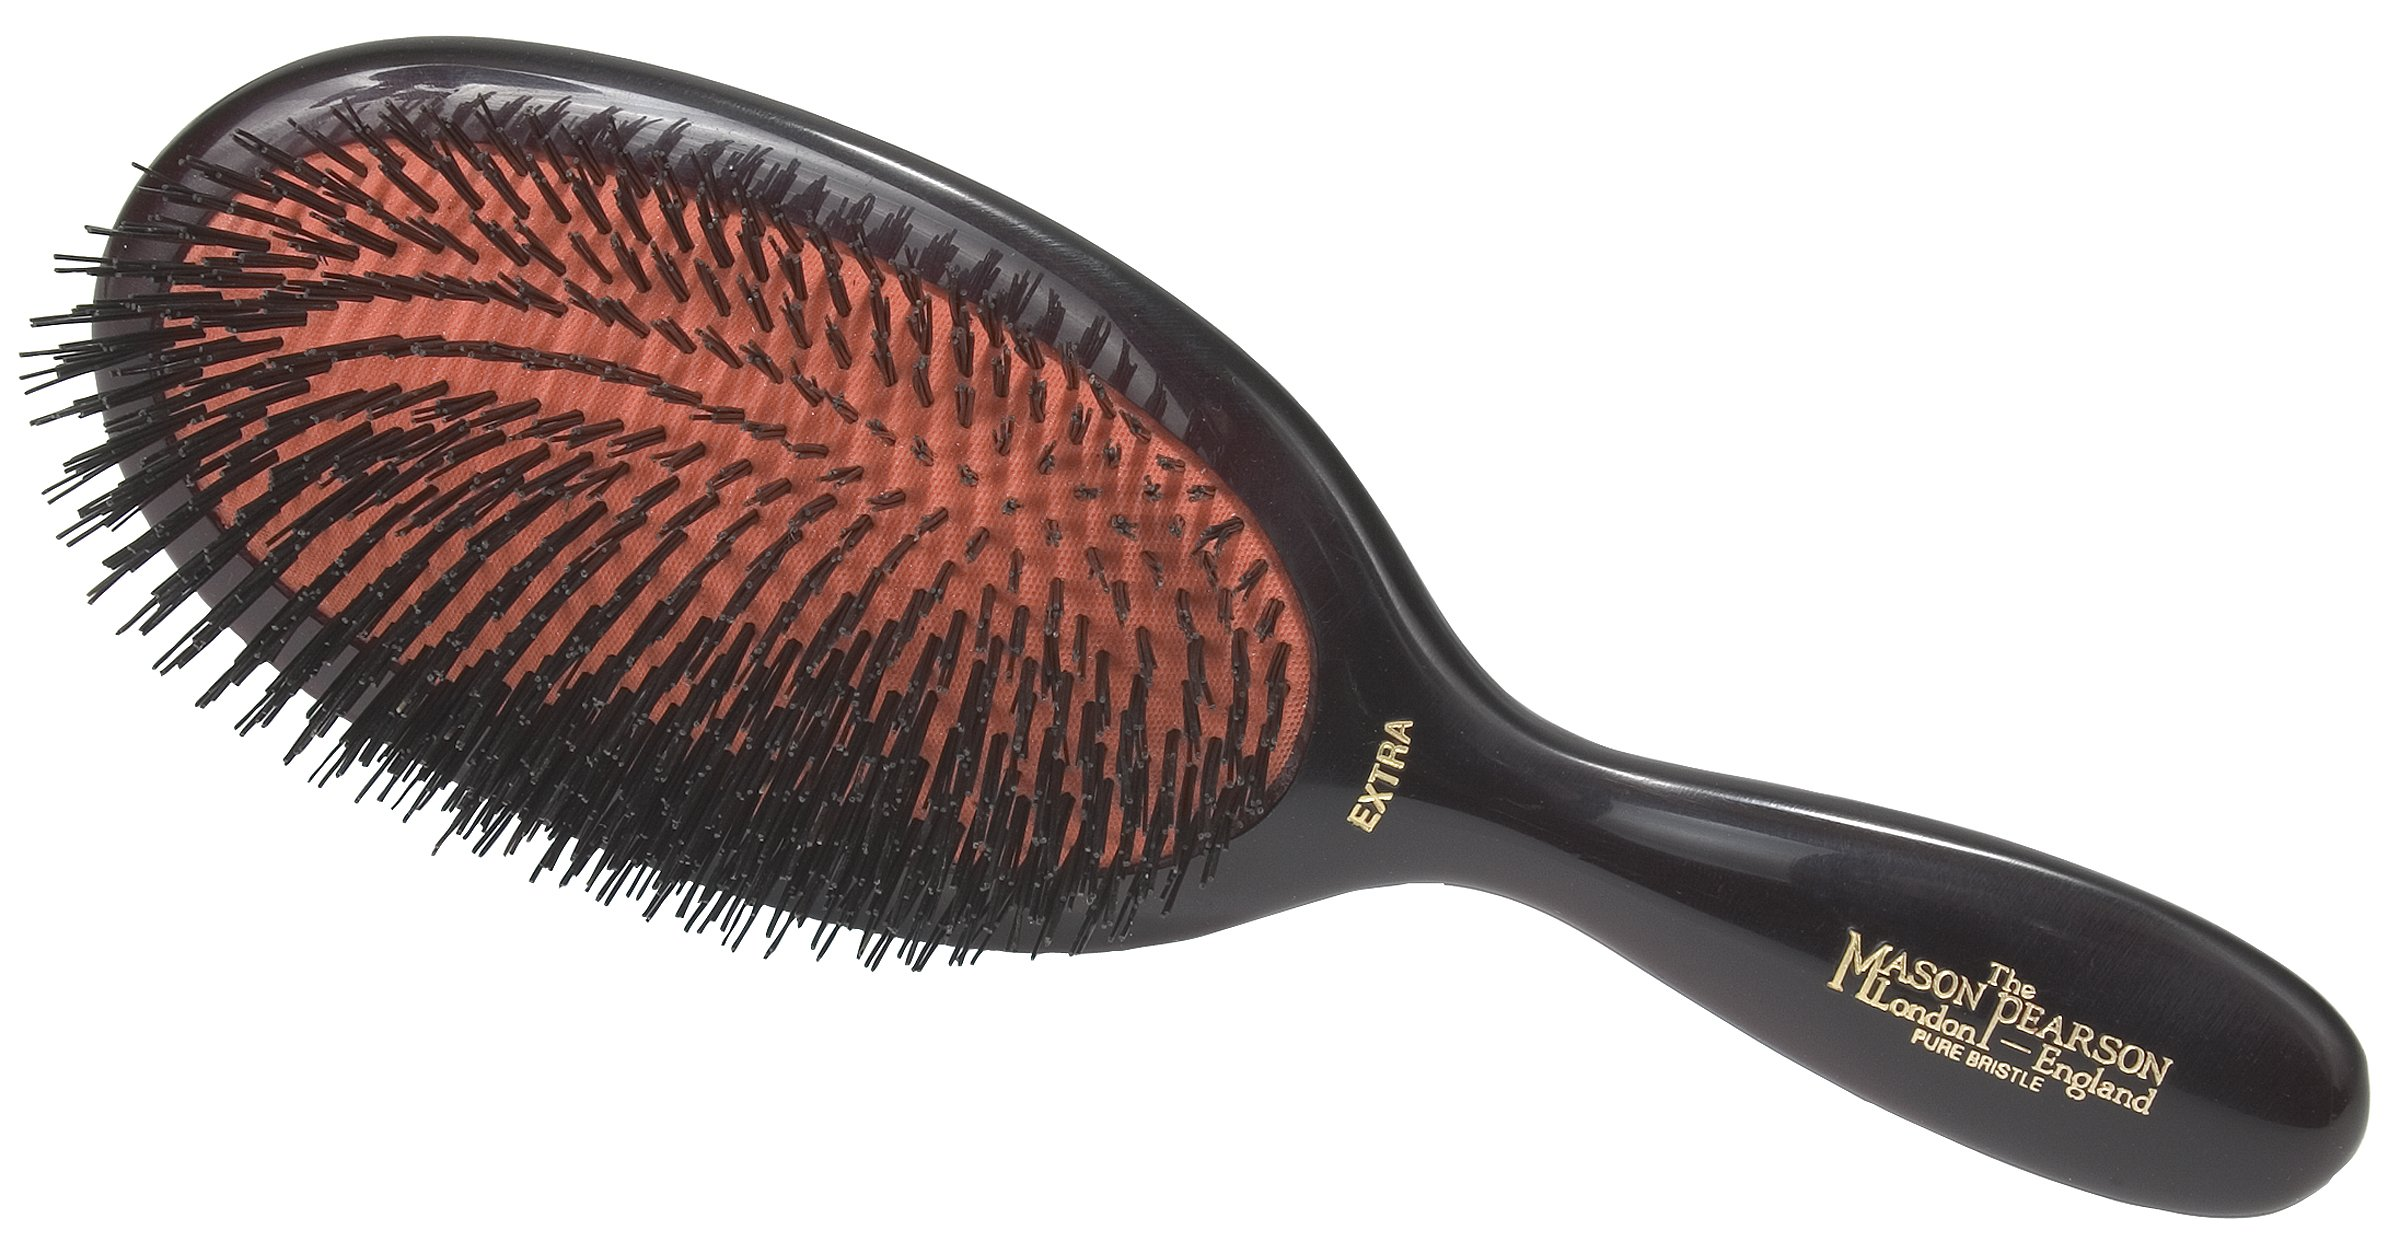 Mason Pearson Large Extra Hair Brush - 81 jLXdlRML - Mason Pearson Extra Hair Brush, Large